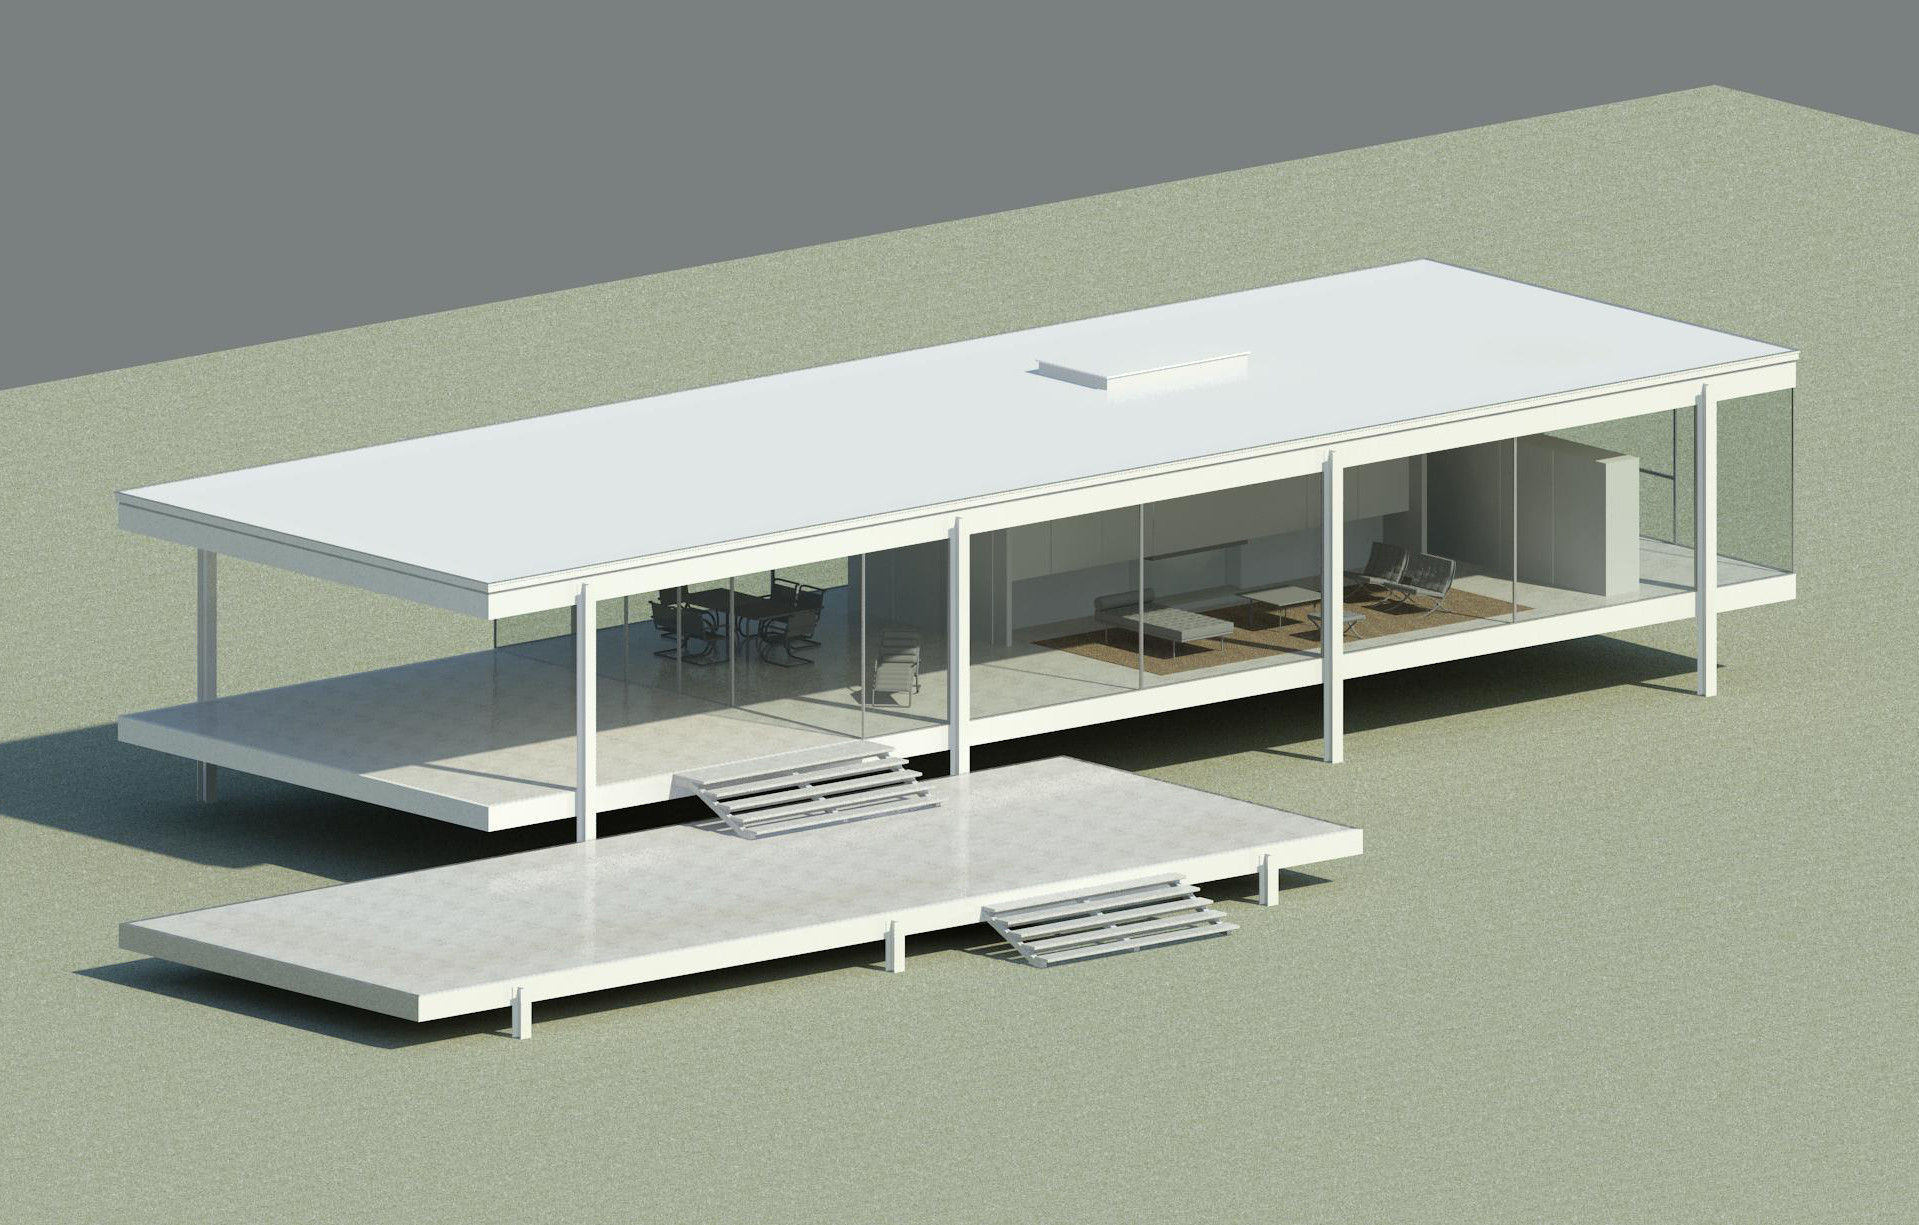 Farnsworth house 3d model fbx dwg rvt for Revit architecture modern house design 1